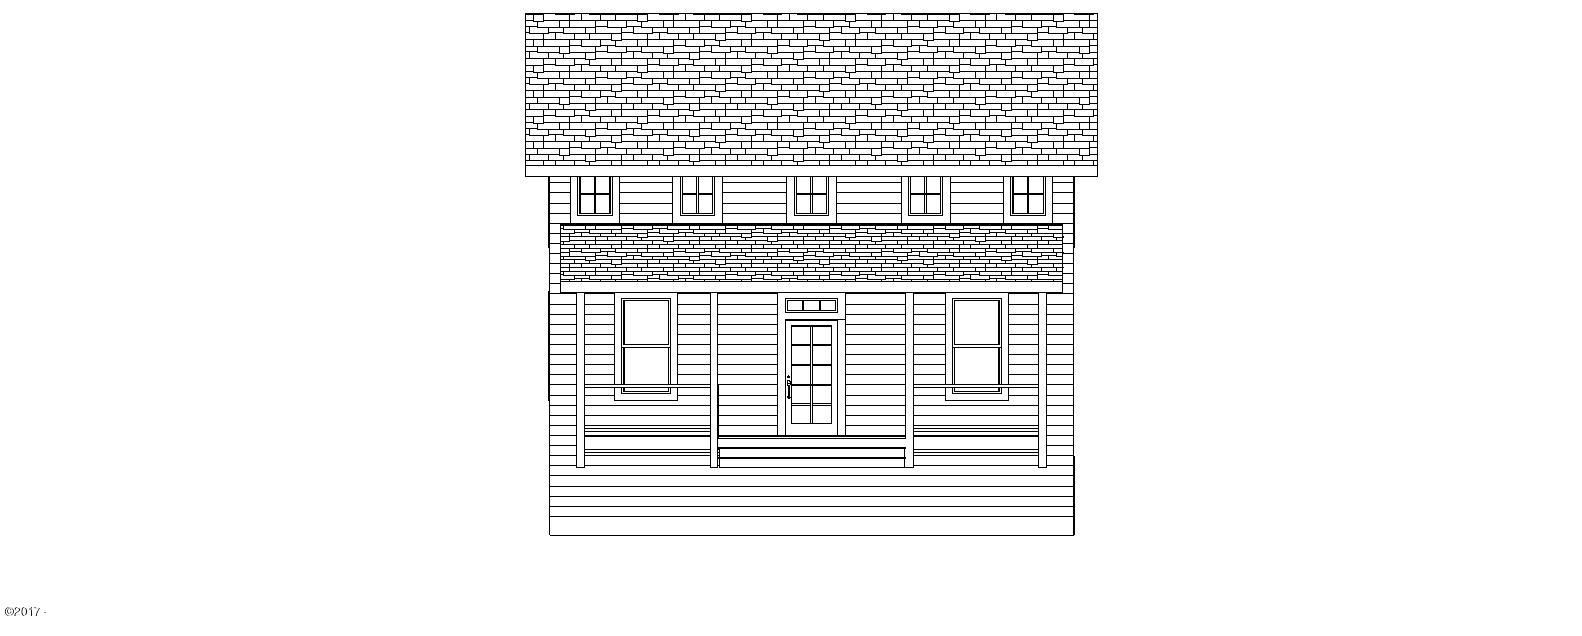 2637 SW Anemone Ave, Lincoln City, OR 97367 - Lot 73 FRONT VIEW